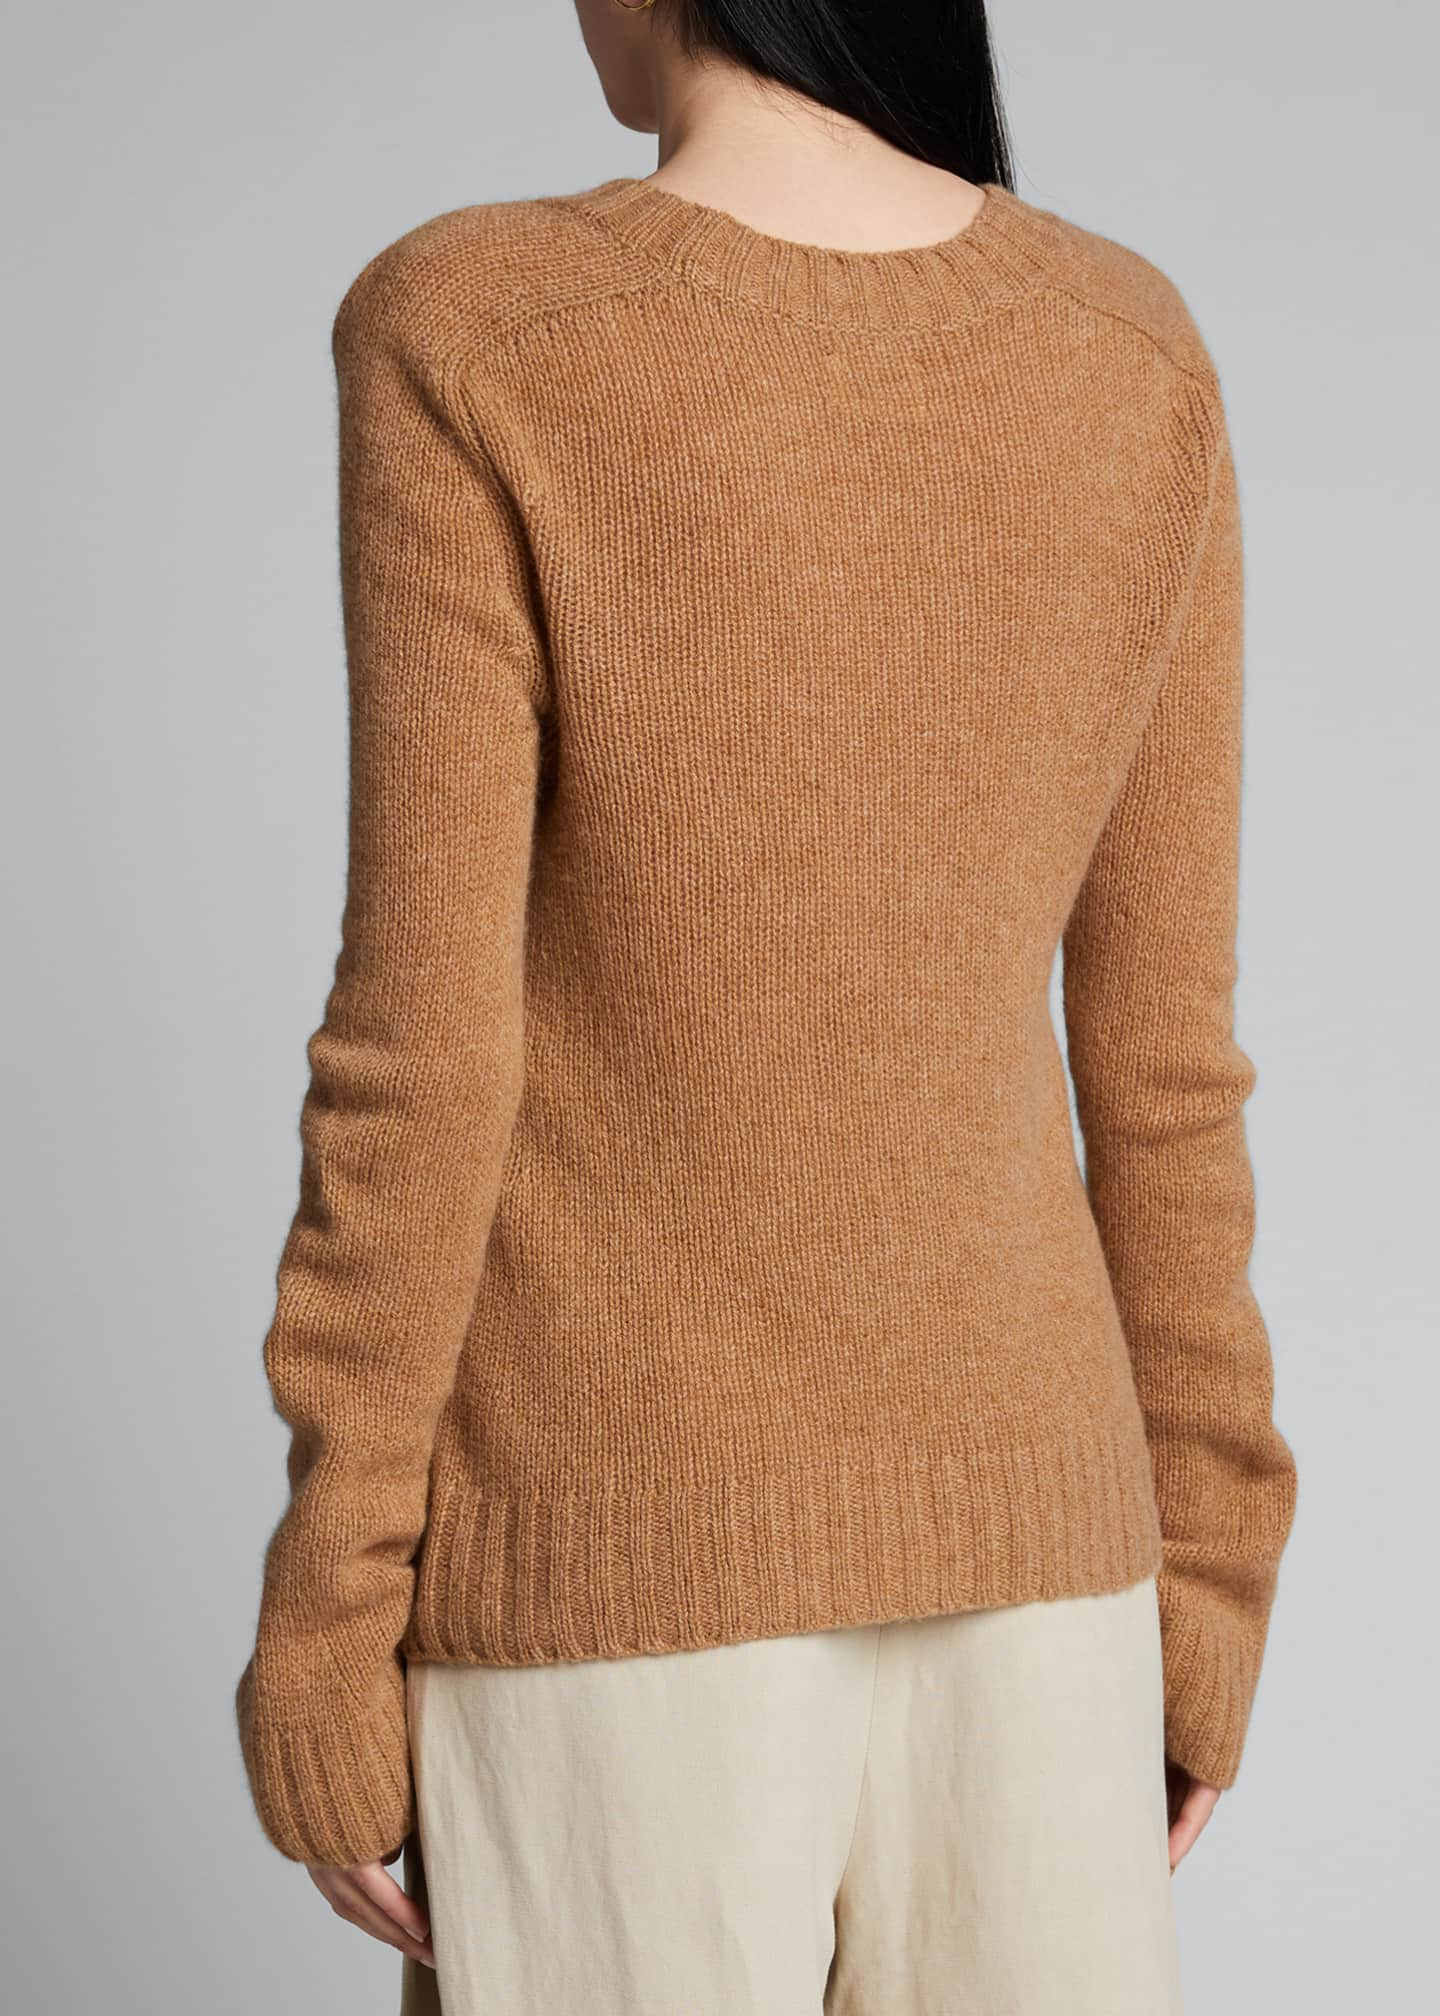 Image 2 of 5: Mary Jane Cashmere Sweater